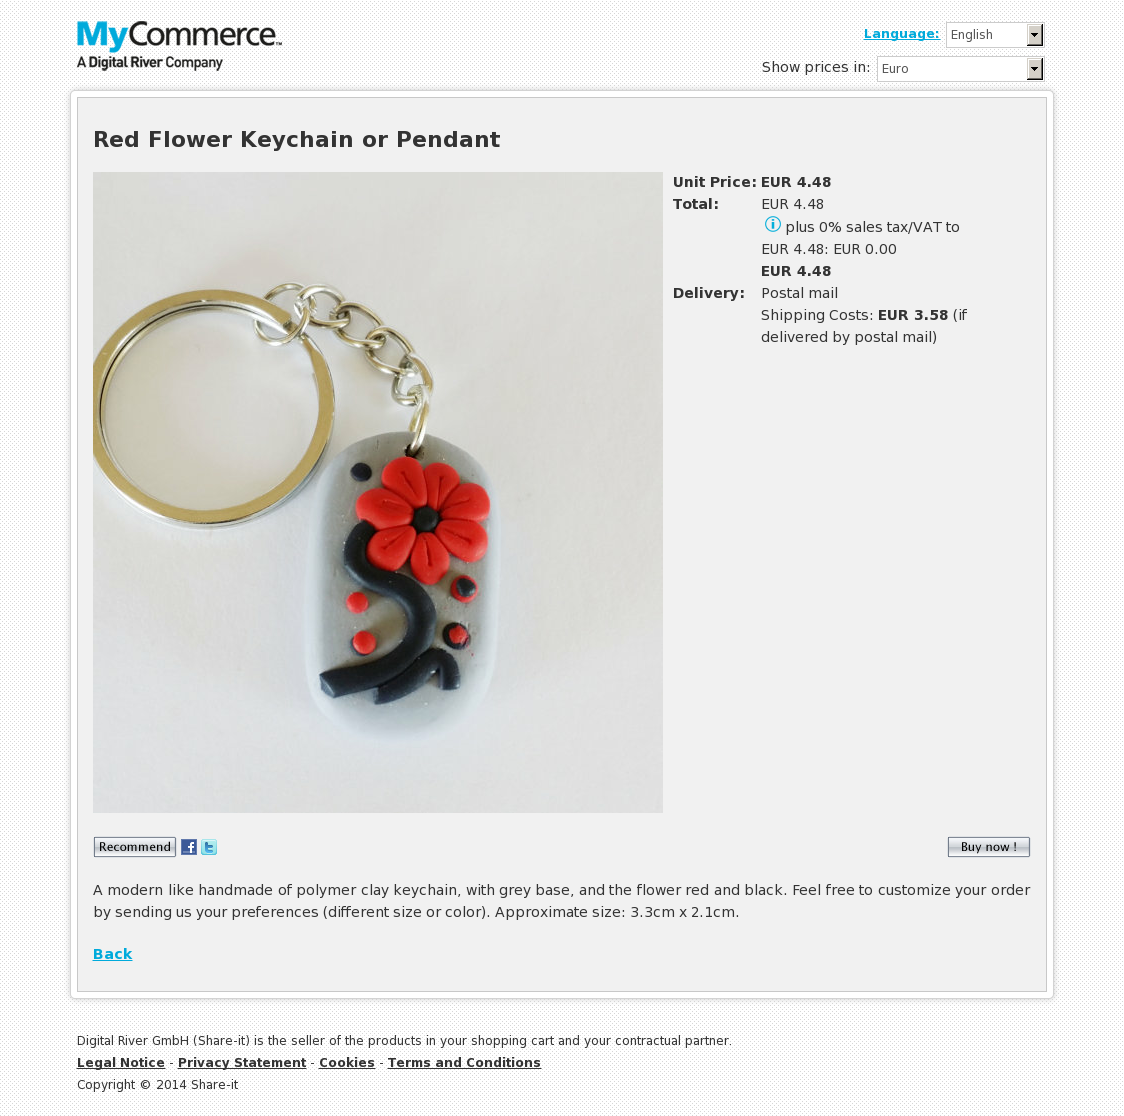 Red Flower Keychain or Pendant